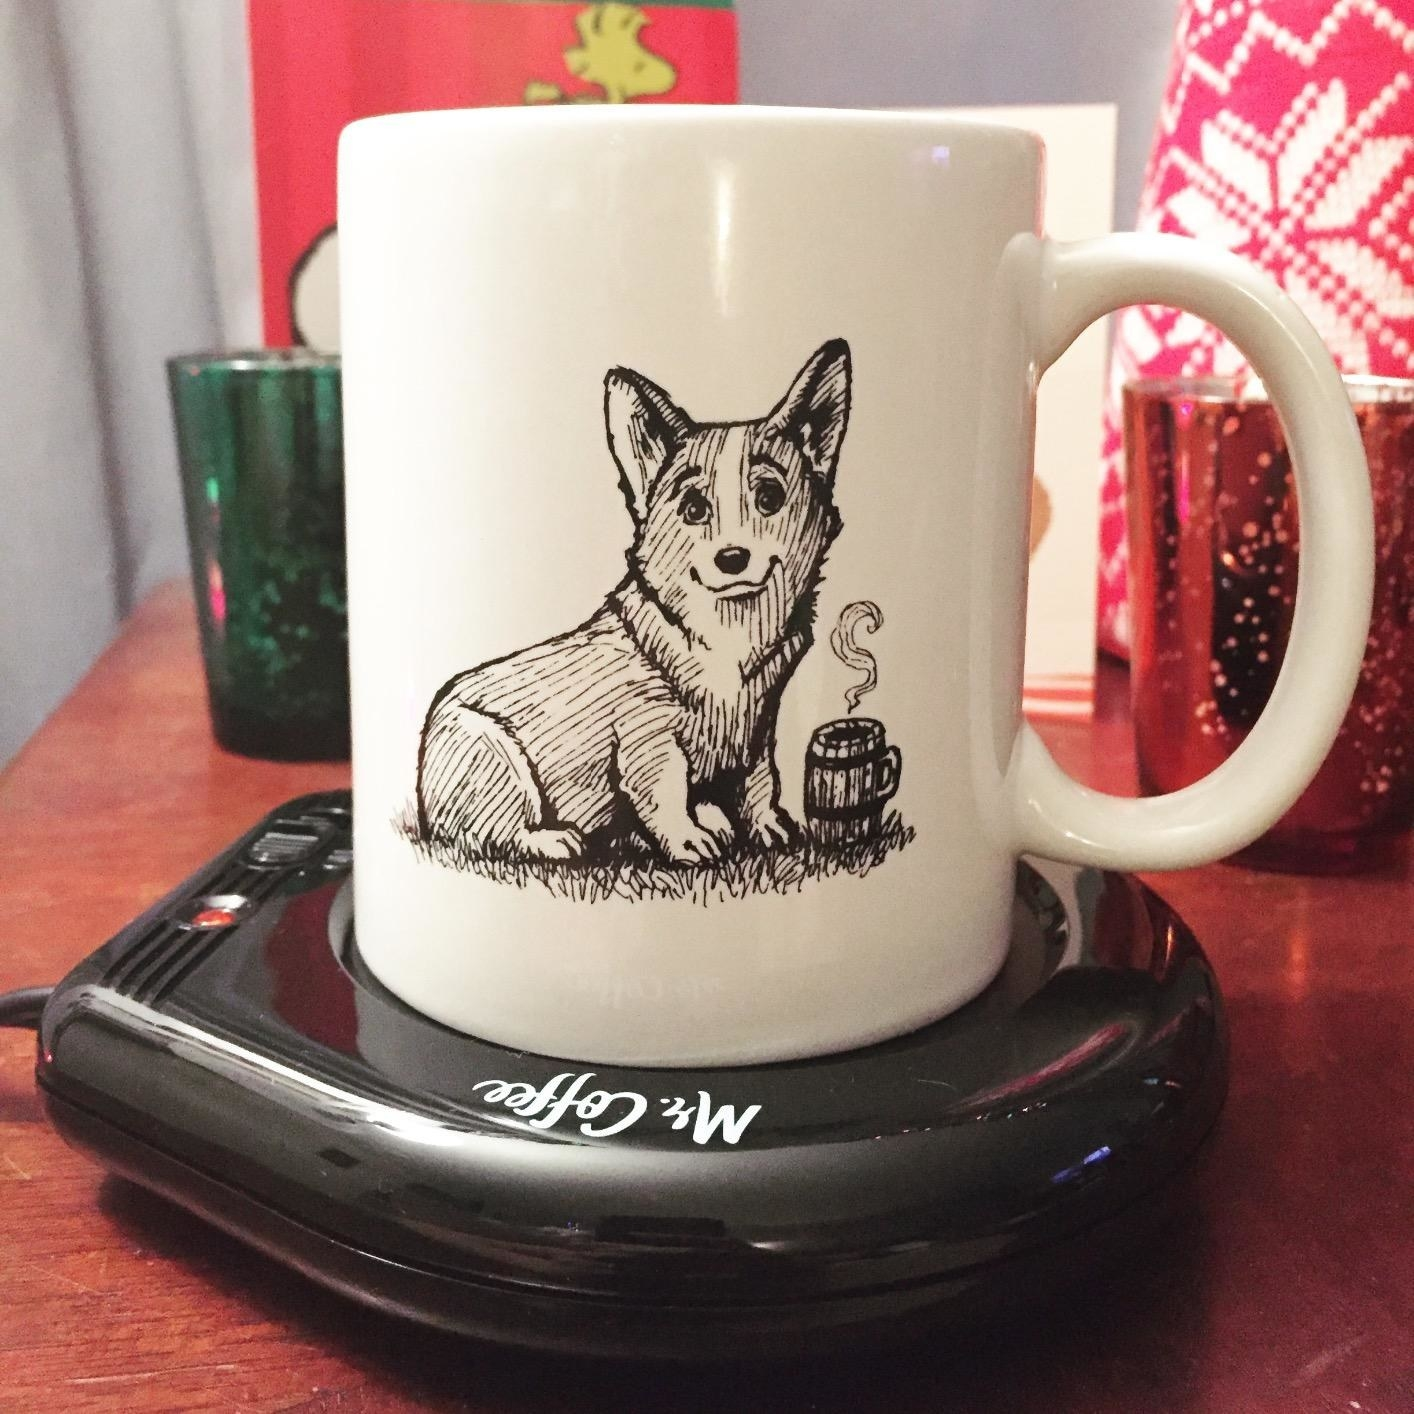 a mug with a drawing of a corgi with a coffee mug on it sitting on a flat black Mr. Coffee mug warmer